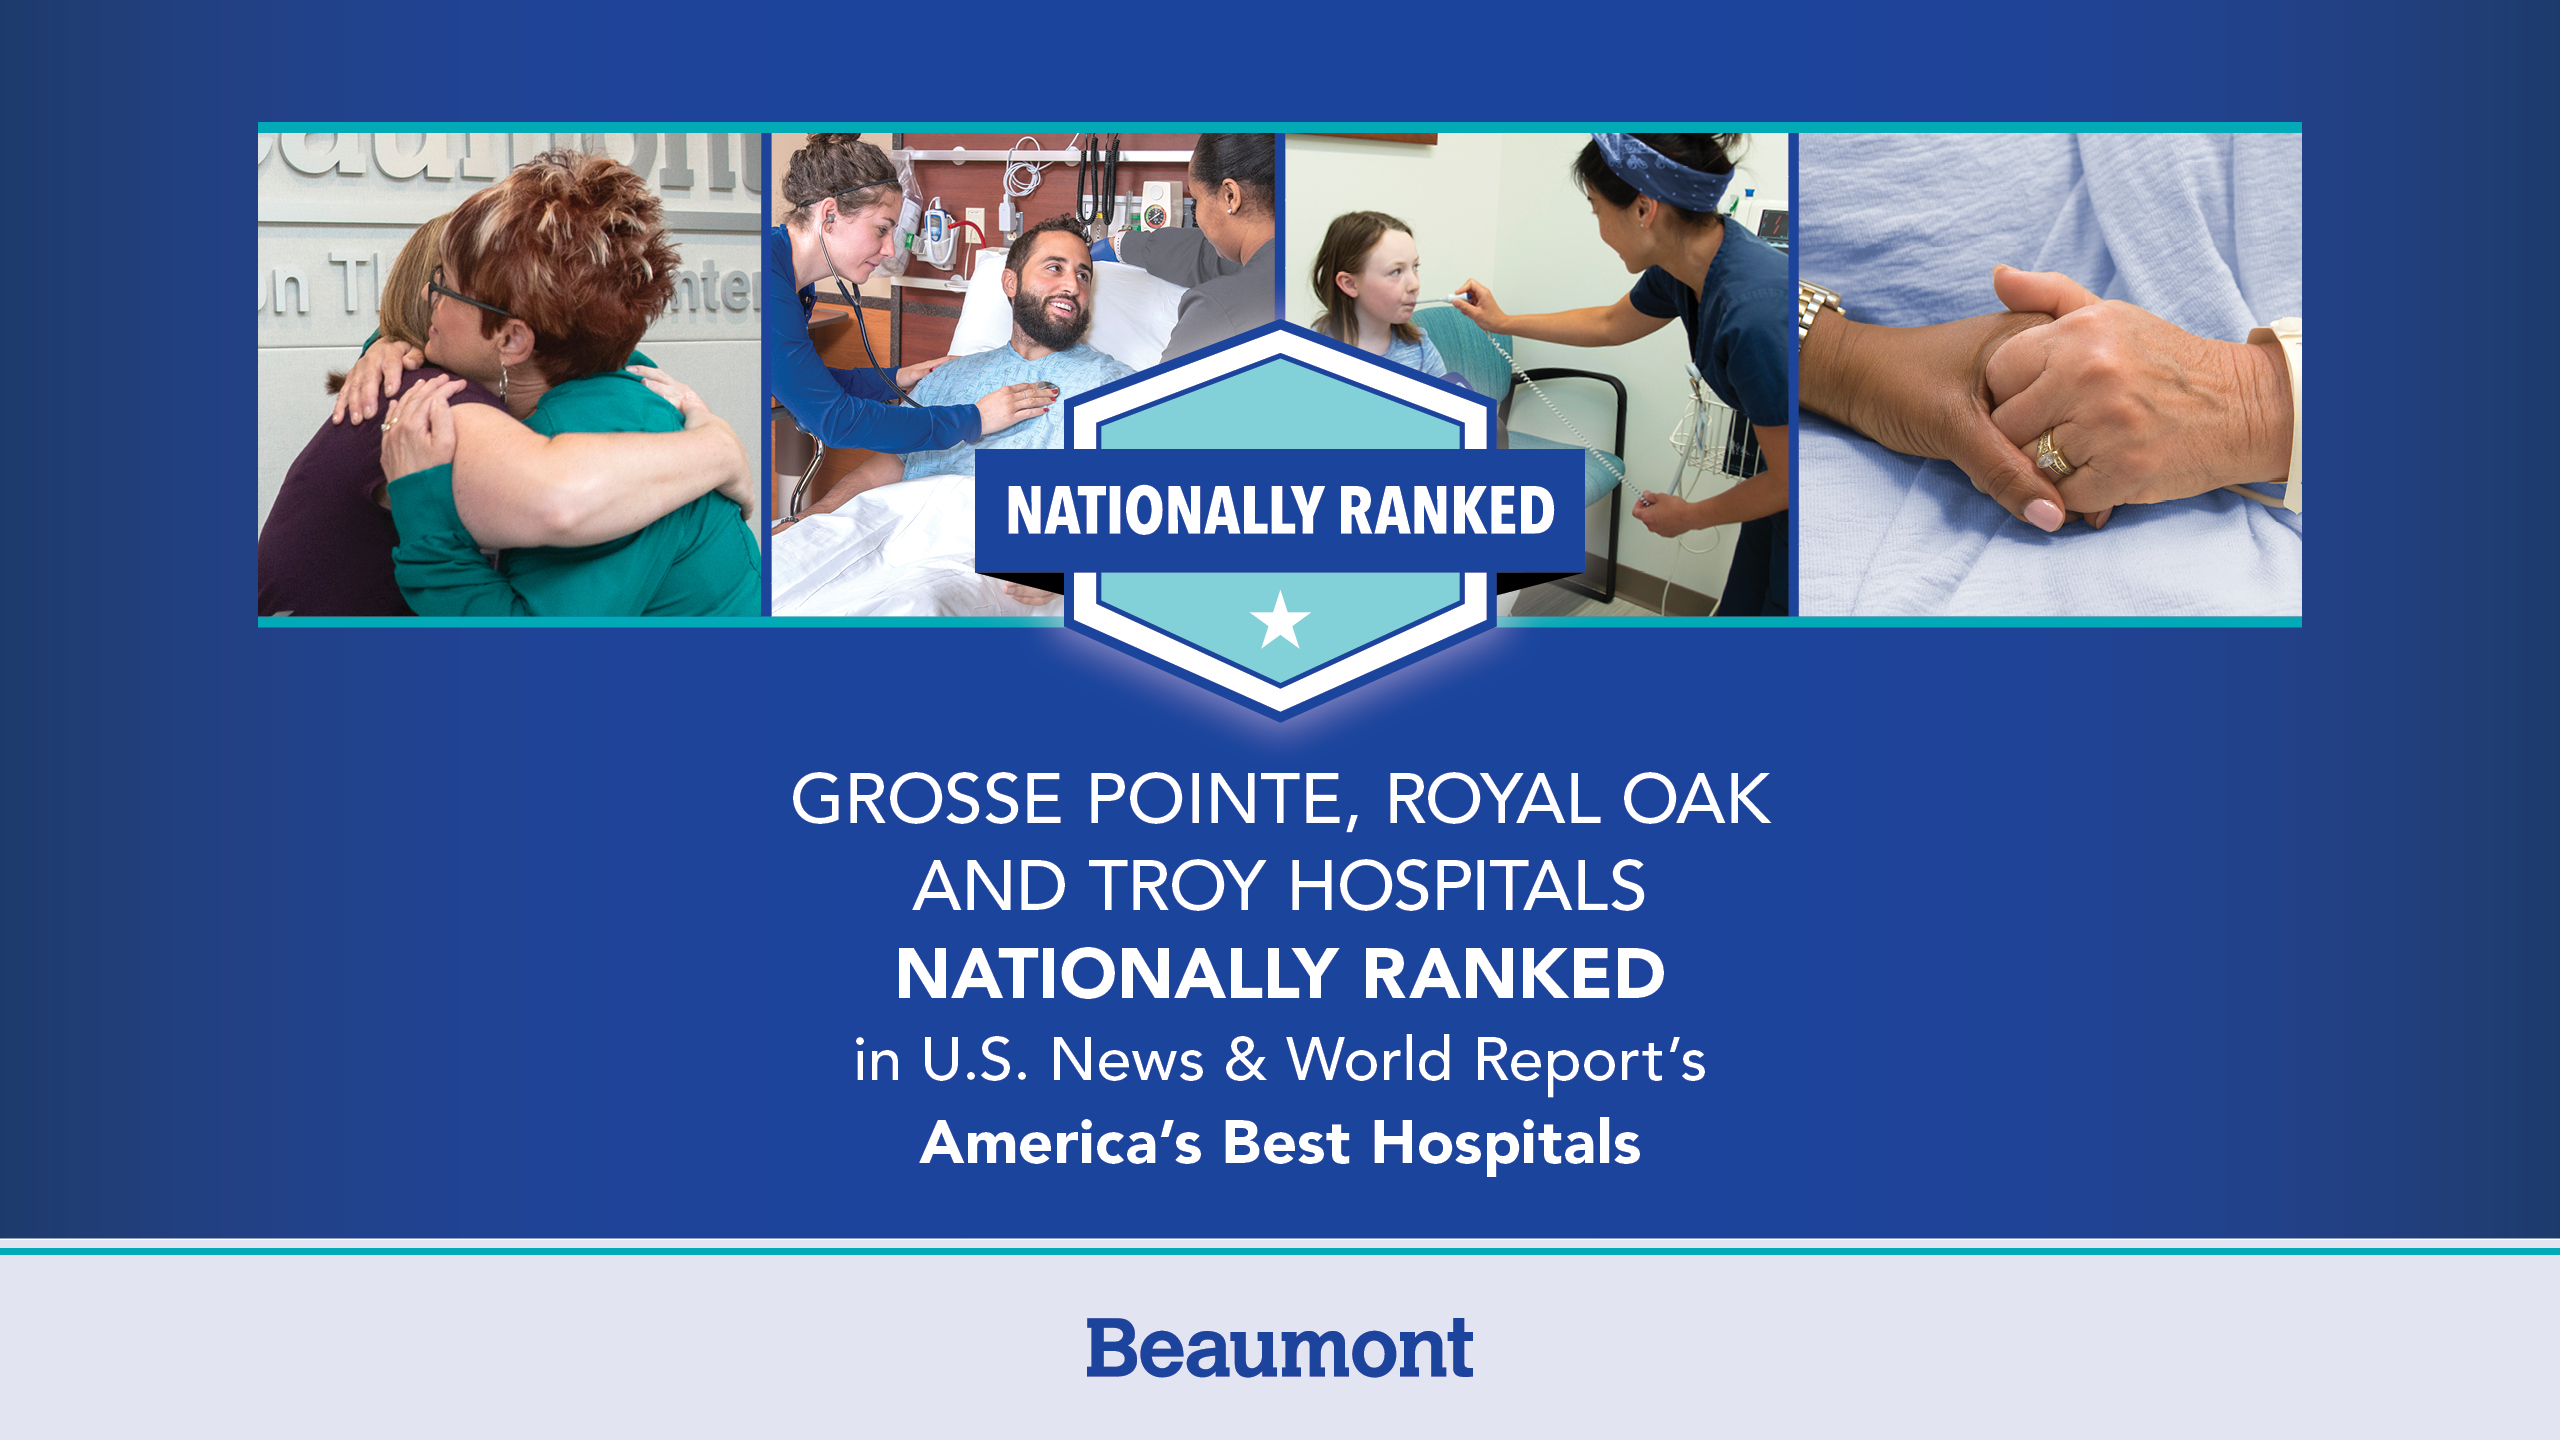 Best Hospitals In The Us 2020 Beaumont Health's Royal Oak, Troy and Grosse Pointe hospitals earn